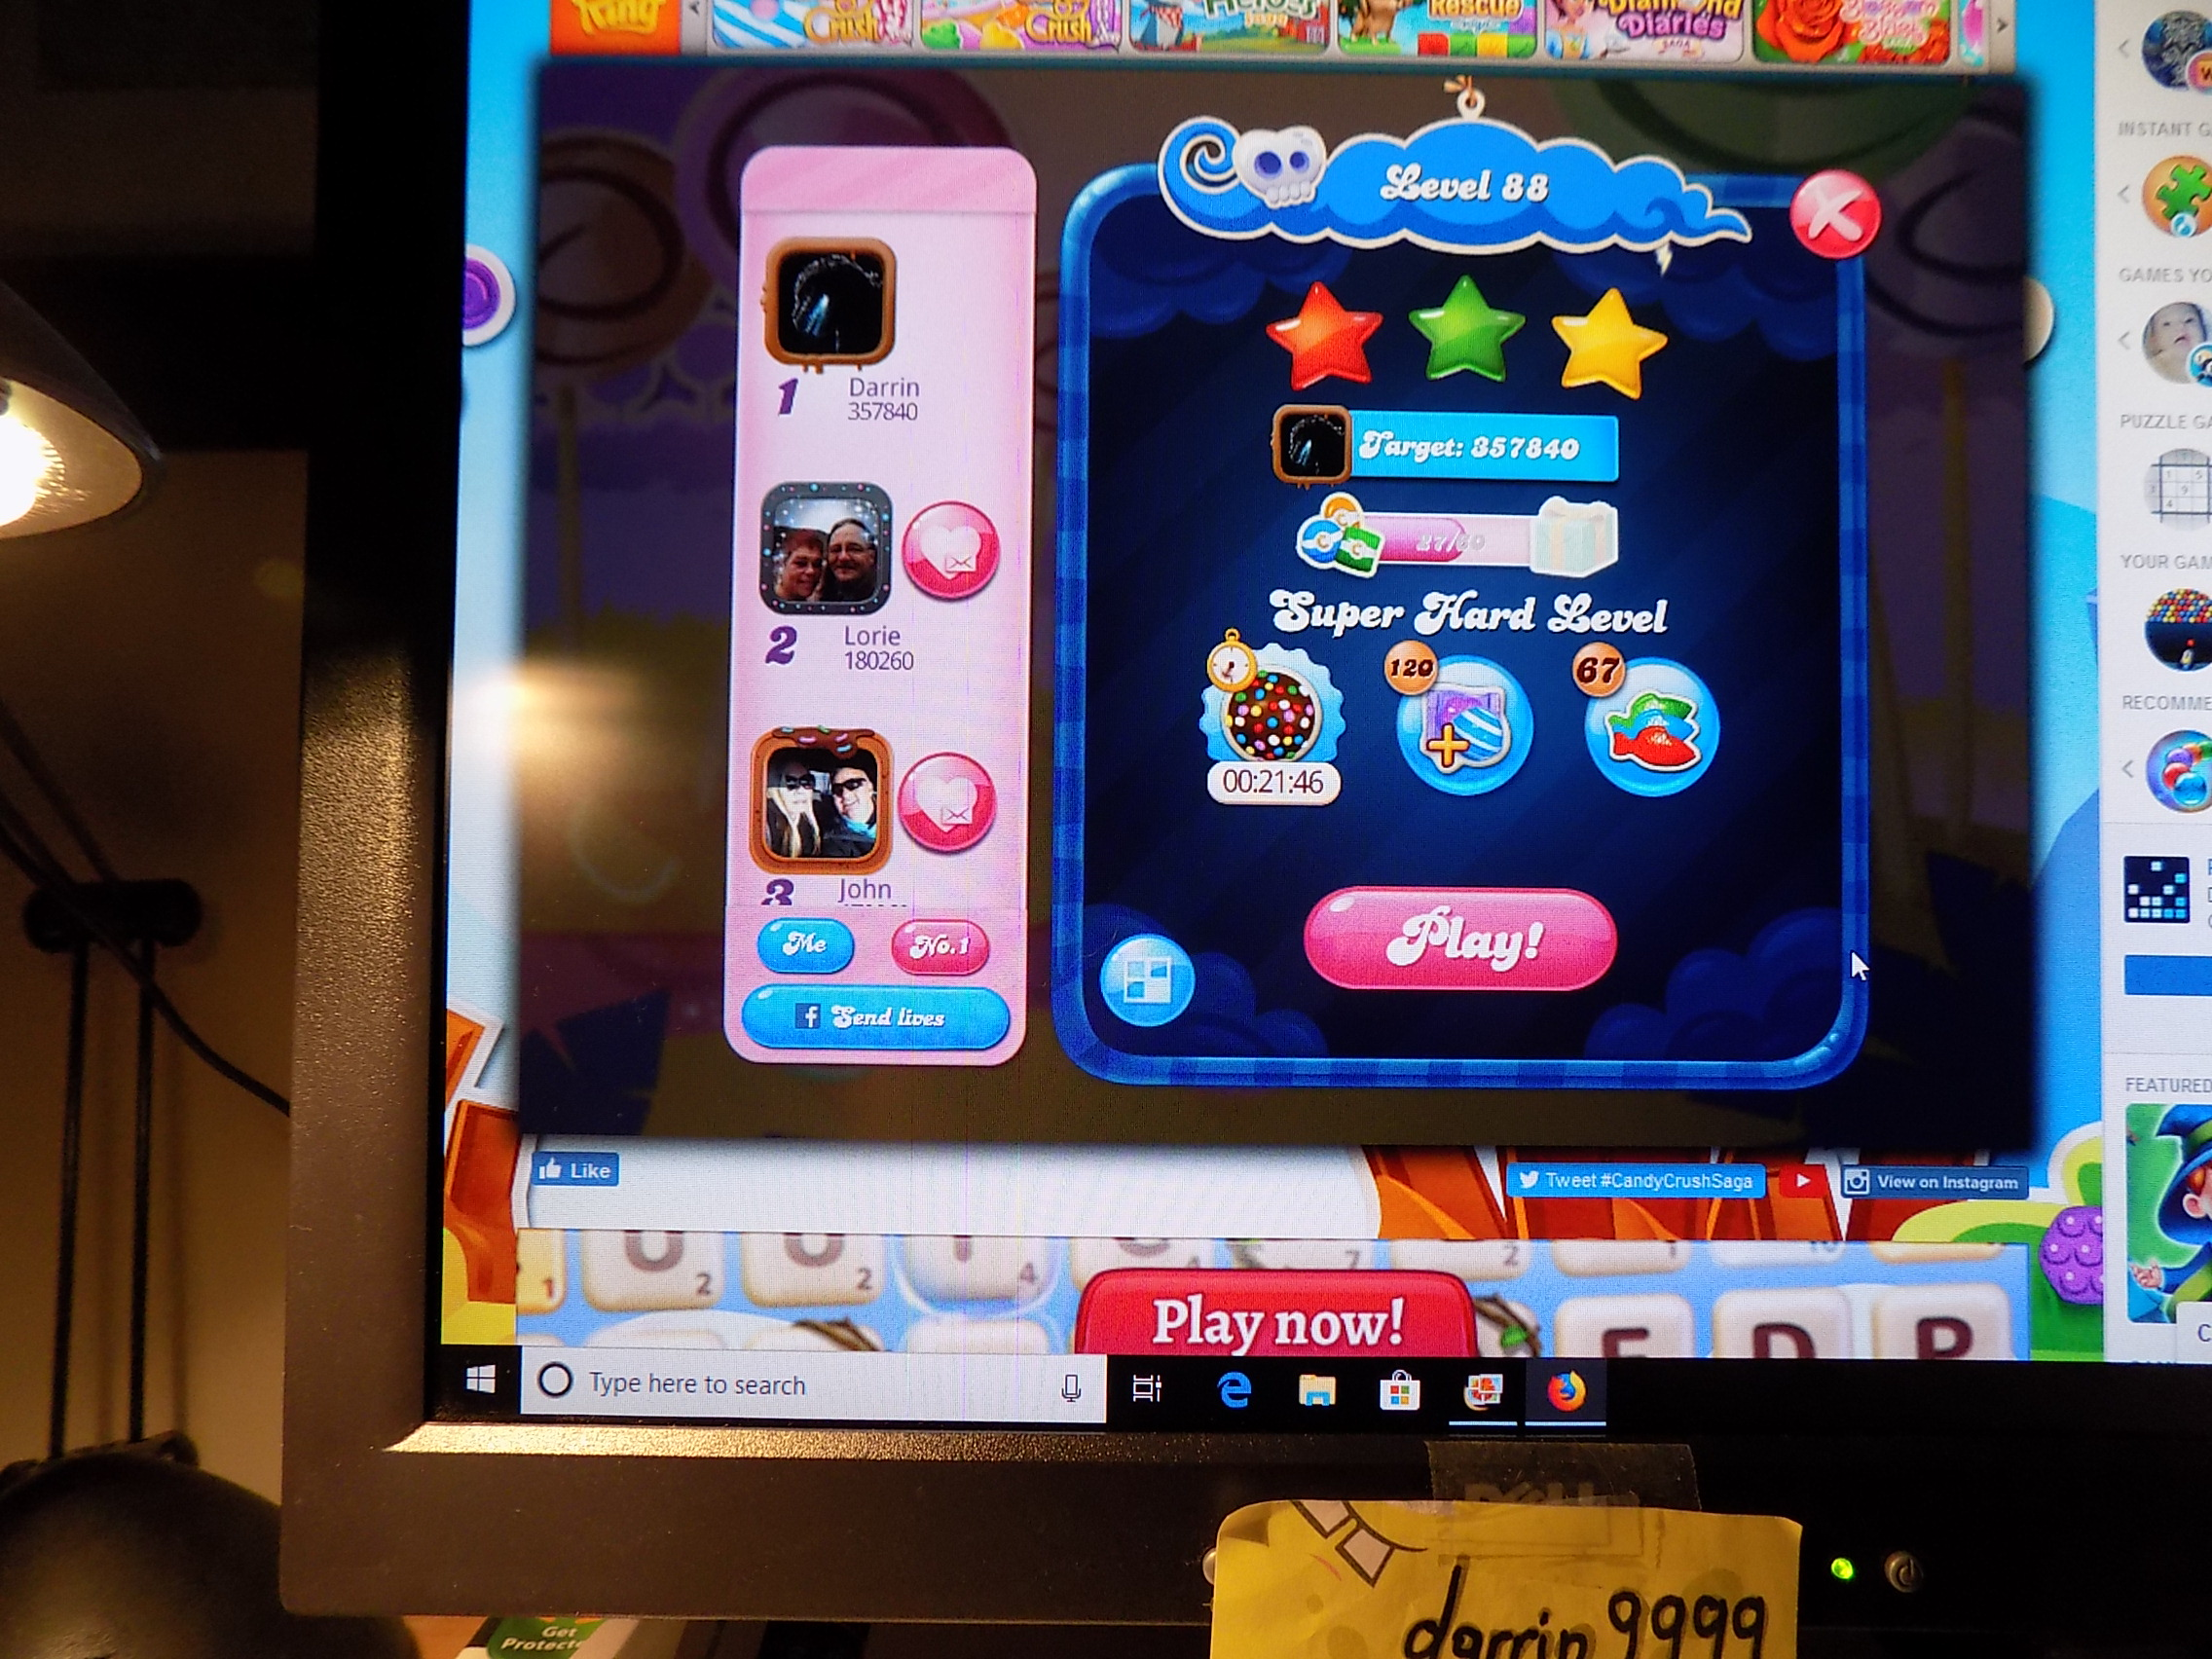 darrin9999: Candy Crush Saga: Level 088 (Web) 357,840 points on 2019-06-18 17:18:03